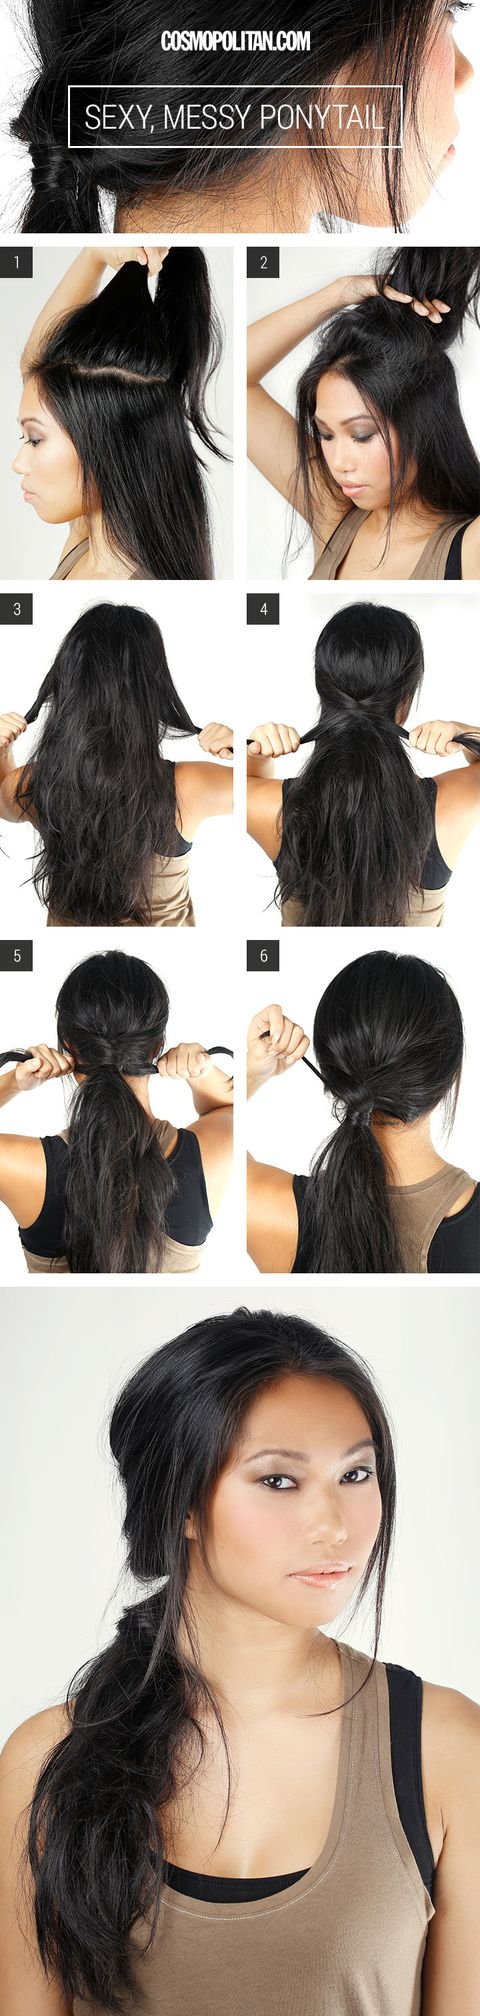 Gather The Center Section Of Your Hair Youll Want To Separate This Portion Away From Rest So That You Can Tease It Build Volume In